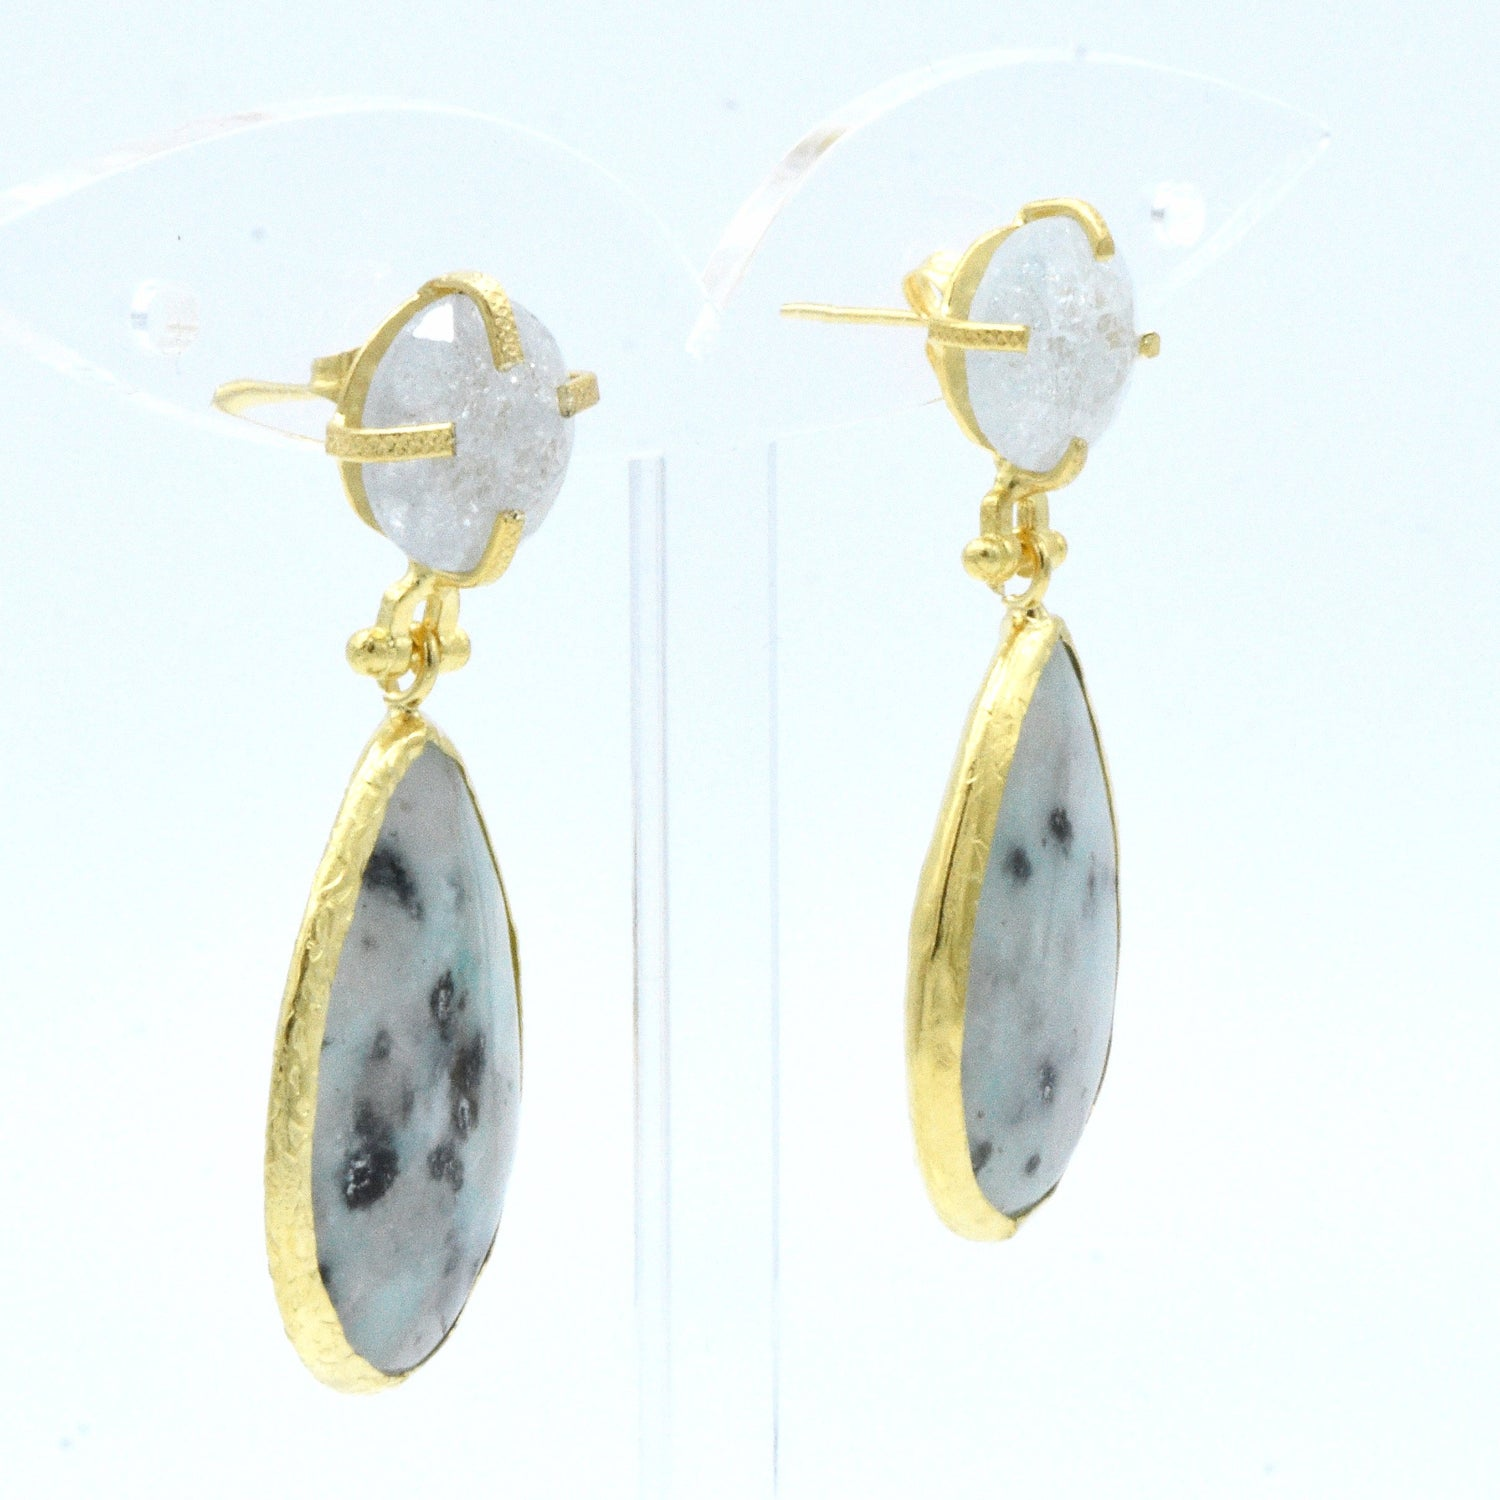 Aylas  Zircon, Agate earrings - 21ct Gold plated semi precious gemstone - Handmade in Ottoman Style by Artisan